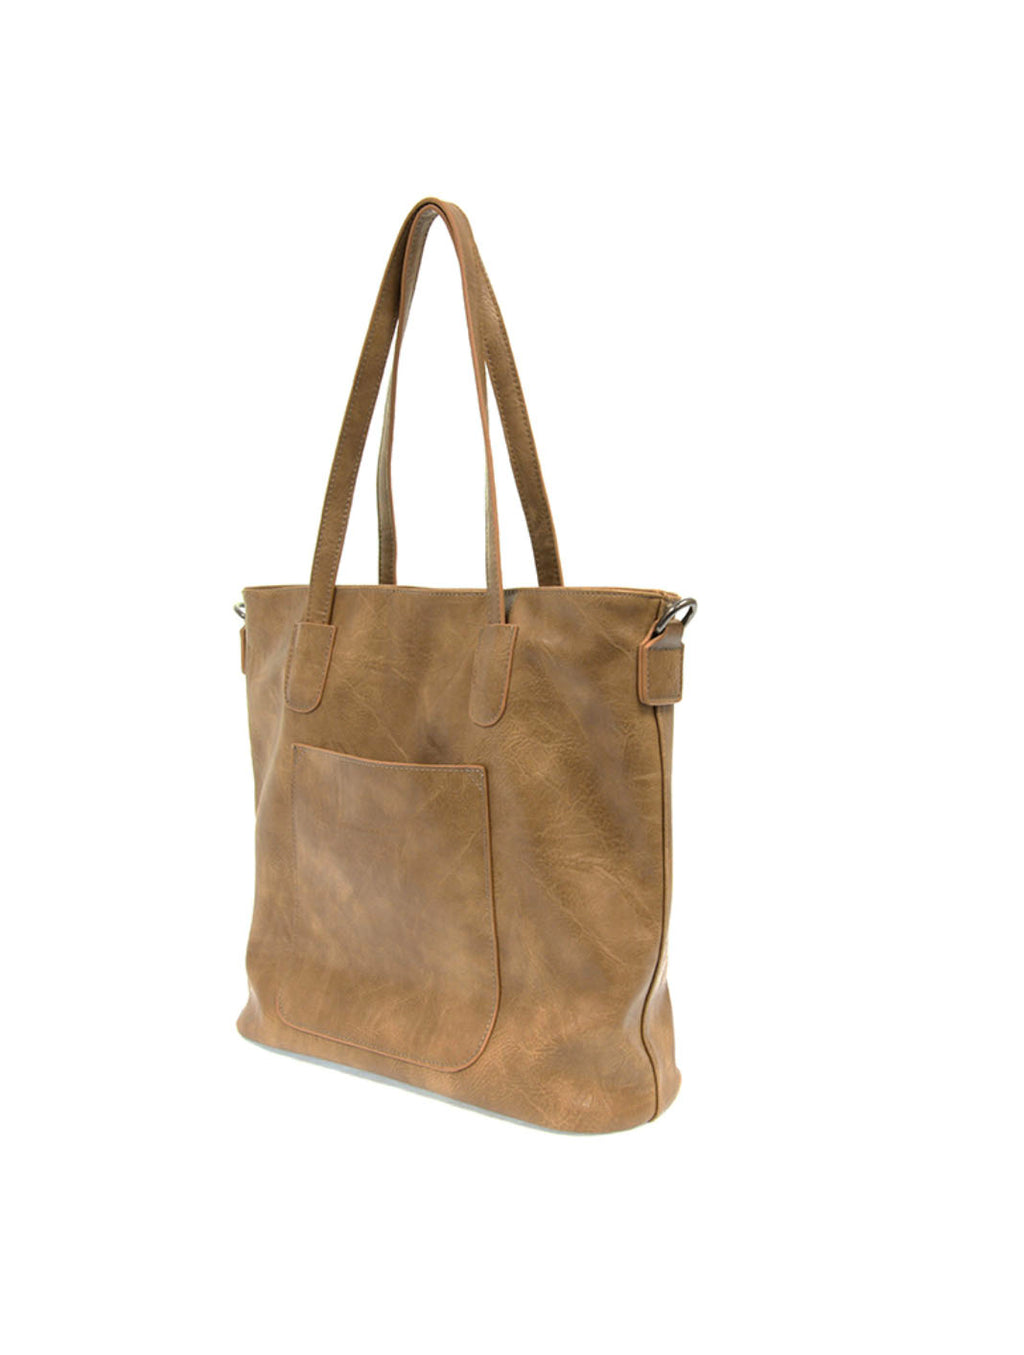 Joy Susan Terri Traveler Tote in Caramel